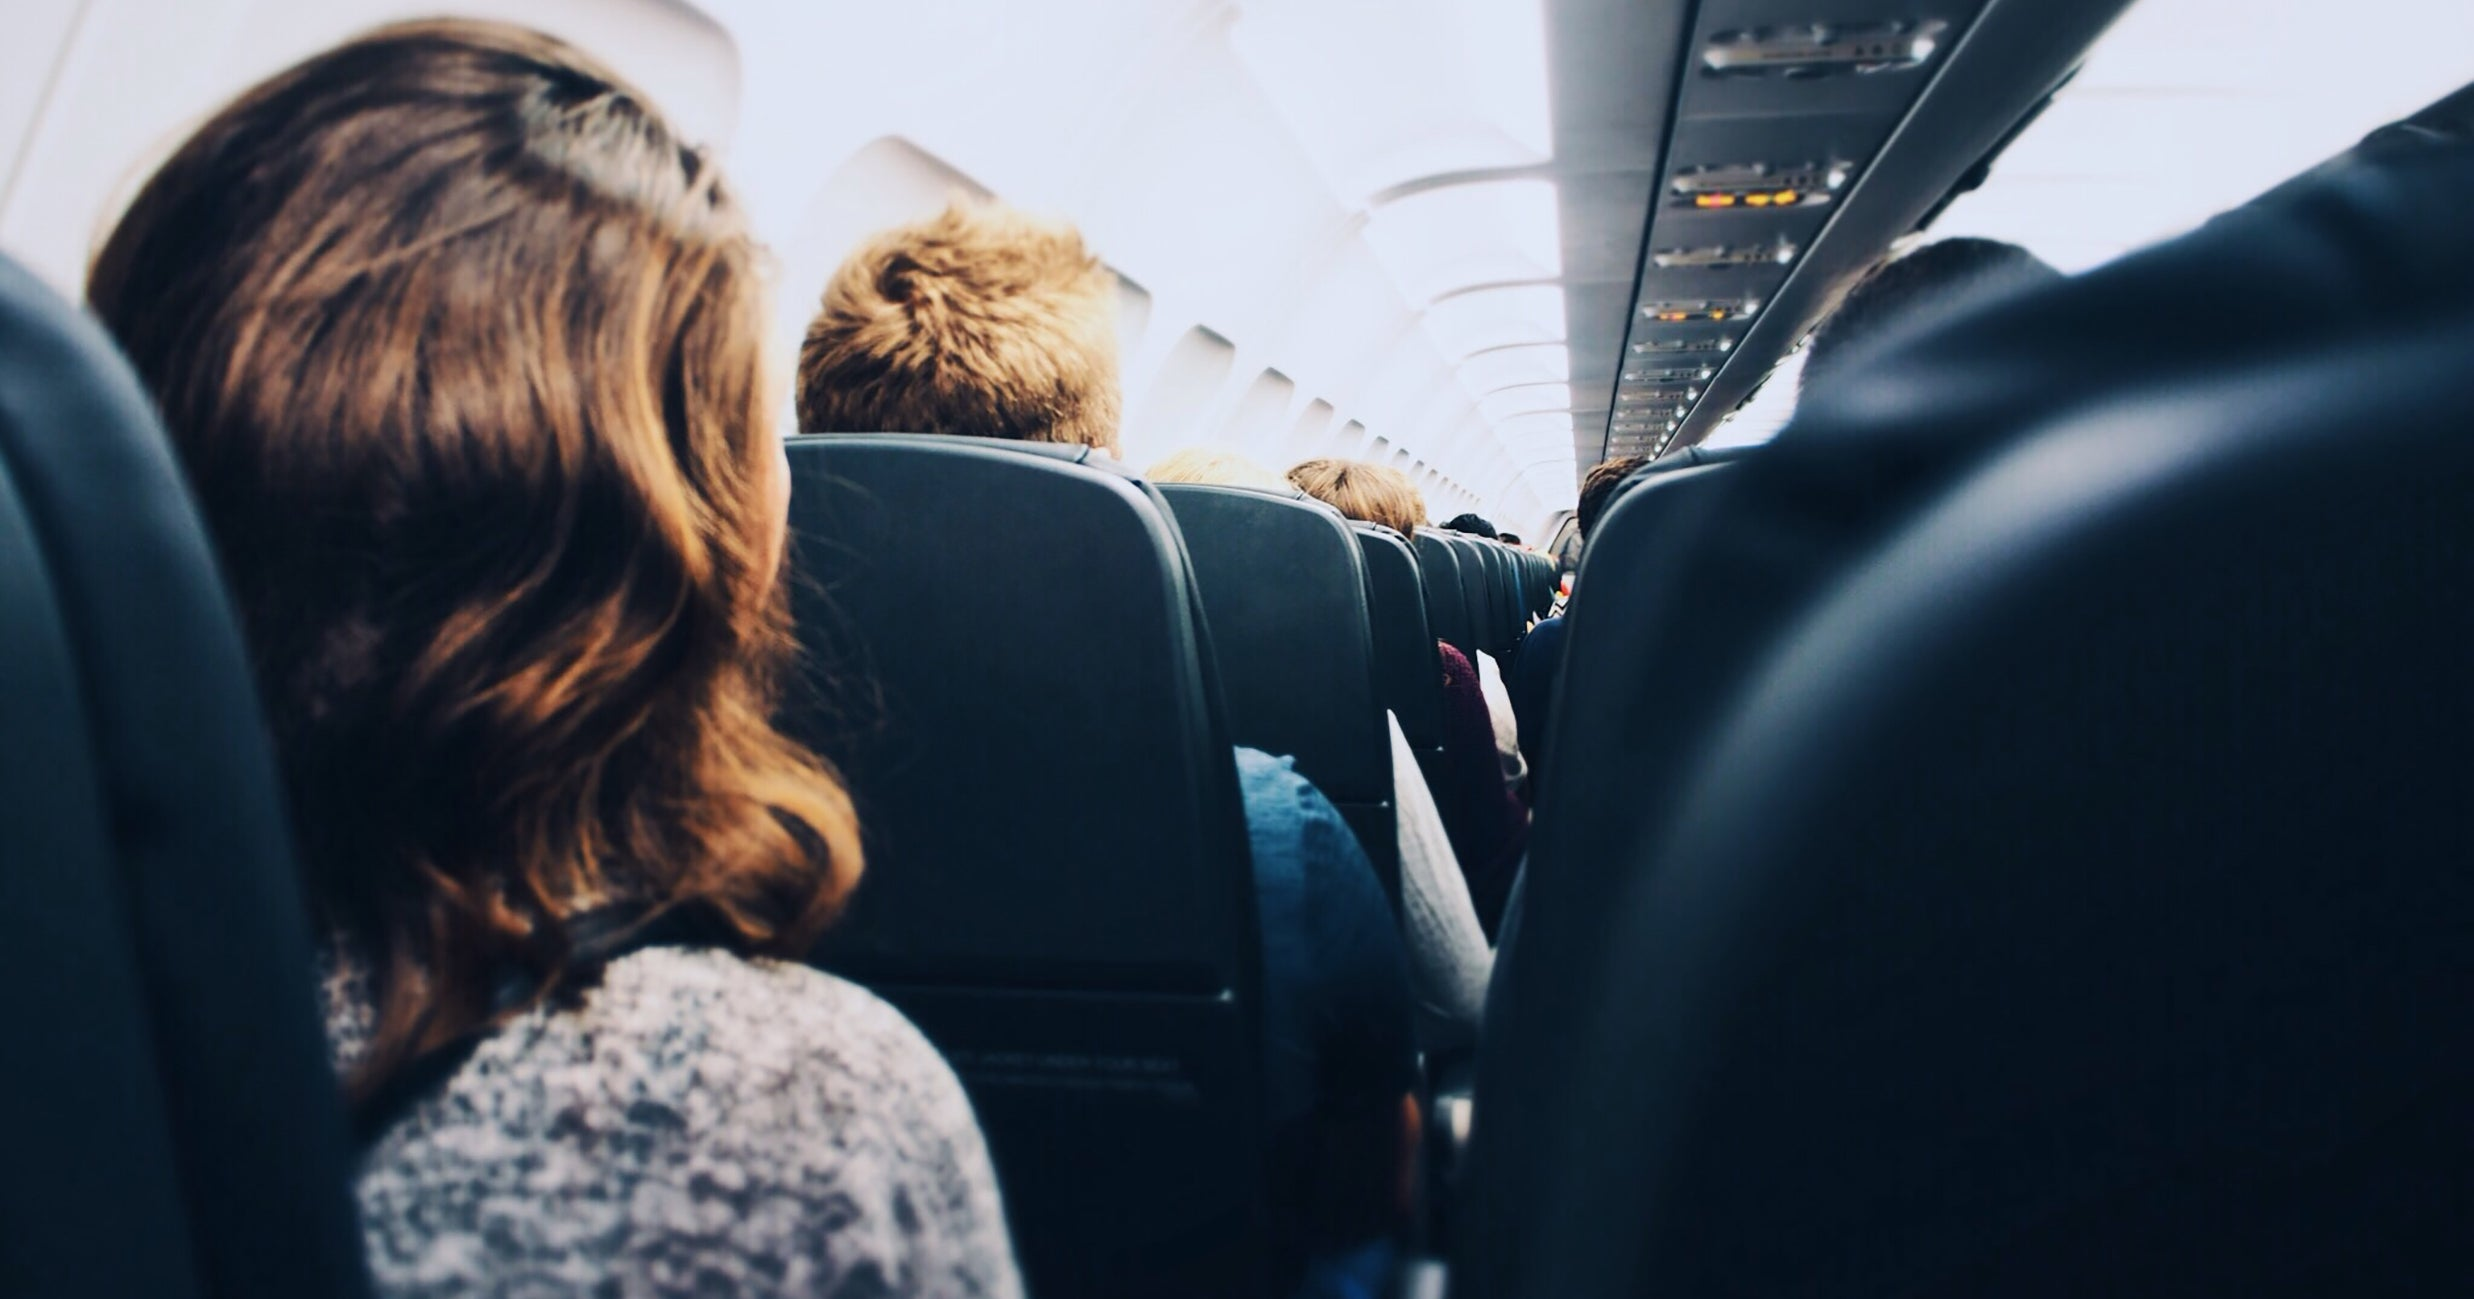 An Etiquette Expert Weighs In On That Viral Seat Reclining Drama